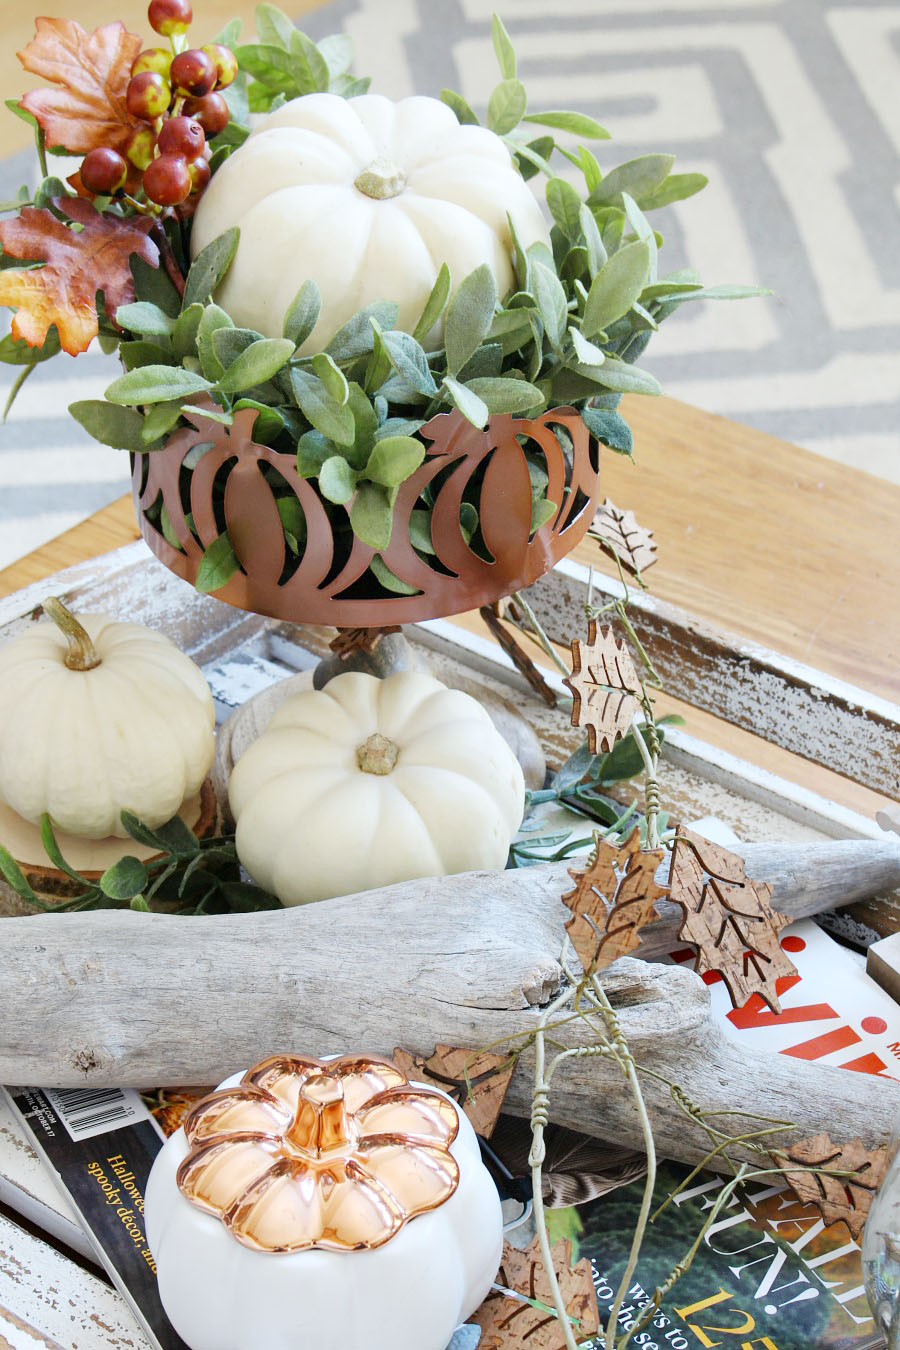 Family Room Fall Decorating Ideas. Easy fall decorations in traditional autumn colors with pops of blue.